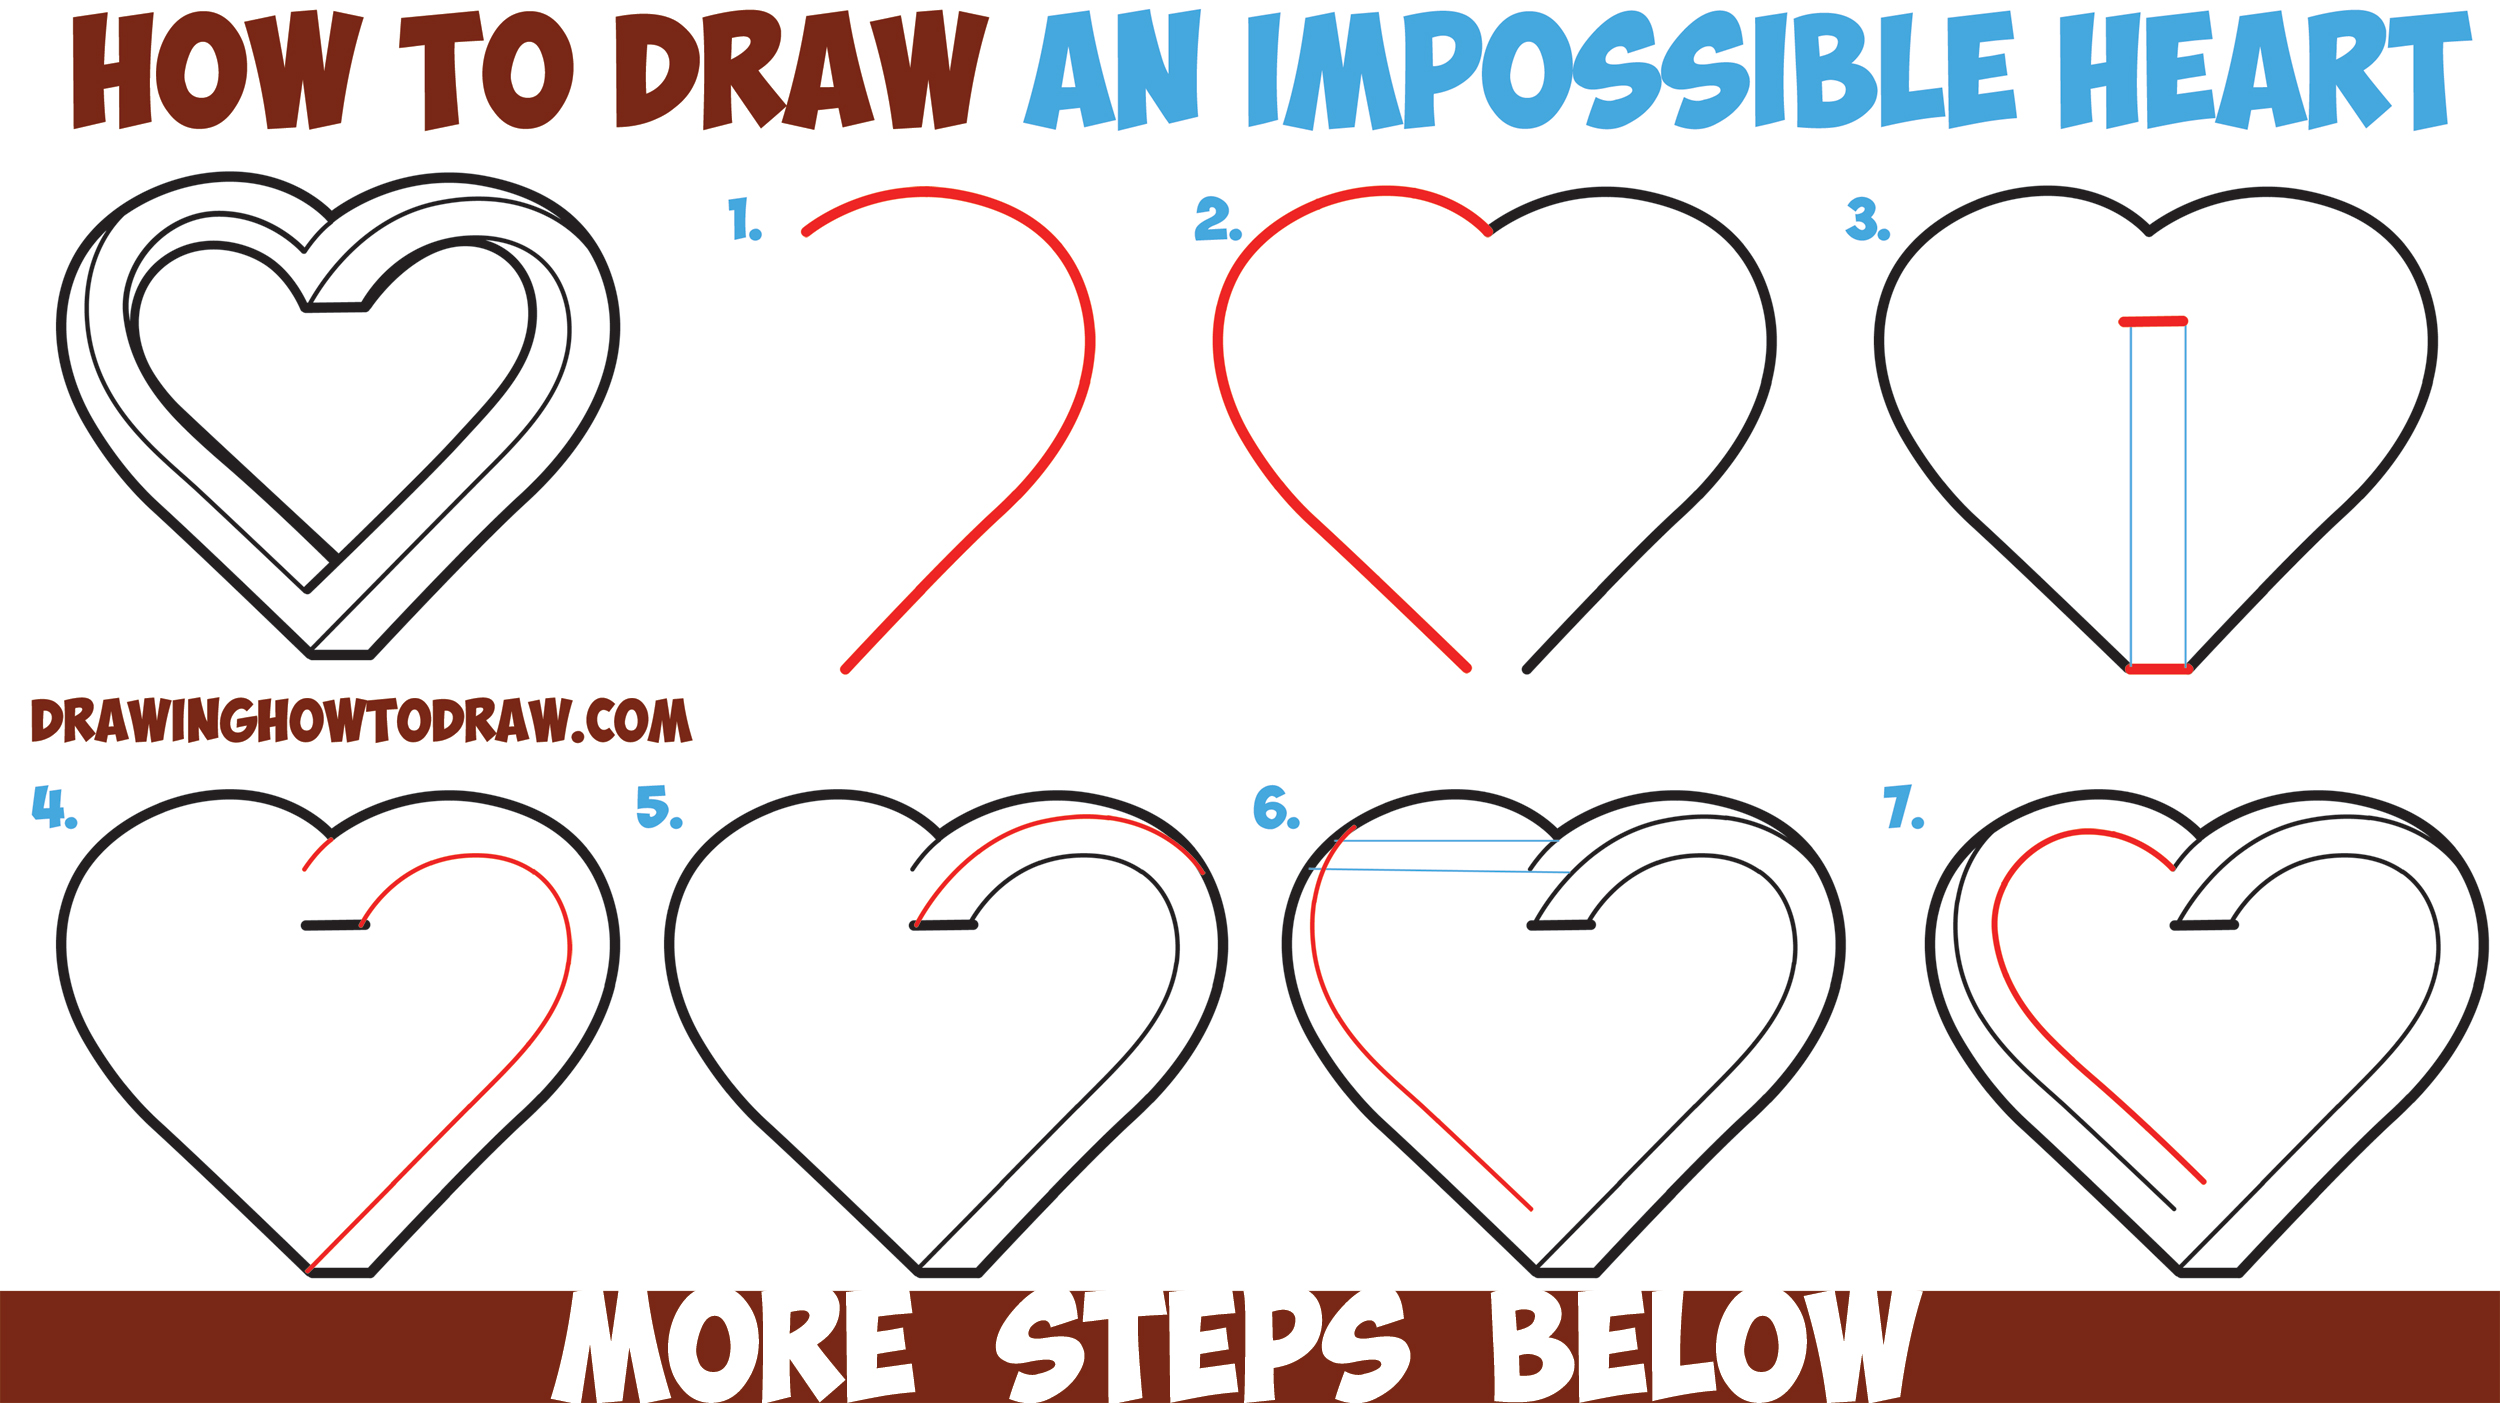 How to draw an impossible heart easy step by step drawing tutorial how to draw an impossible heart easy step by step drawing tutorial for beginners biocorpaavc Choice Image